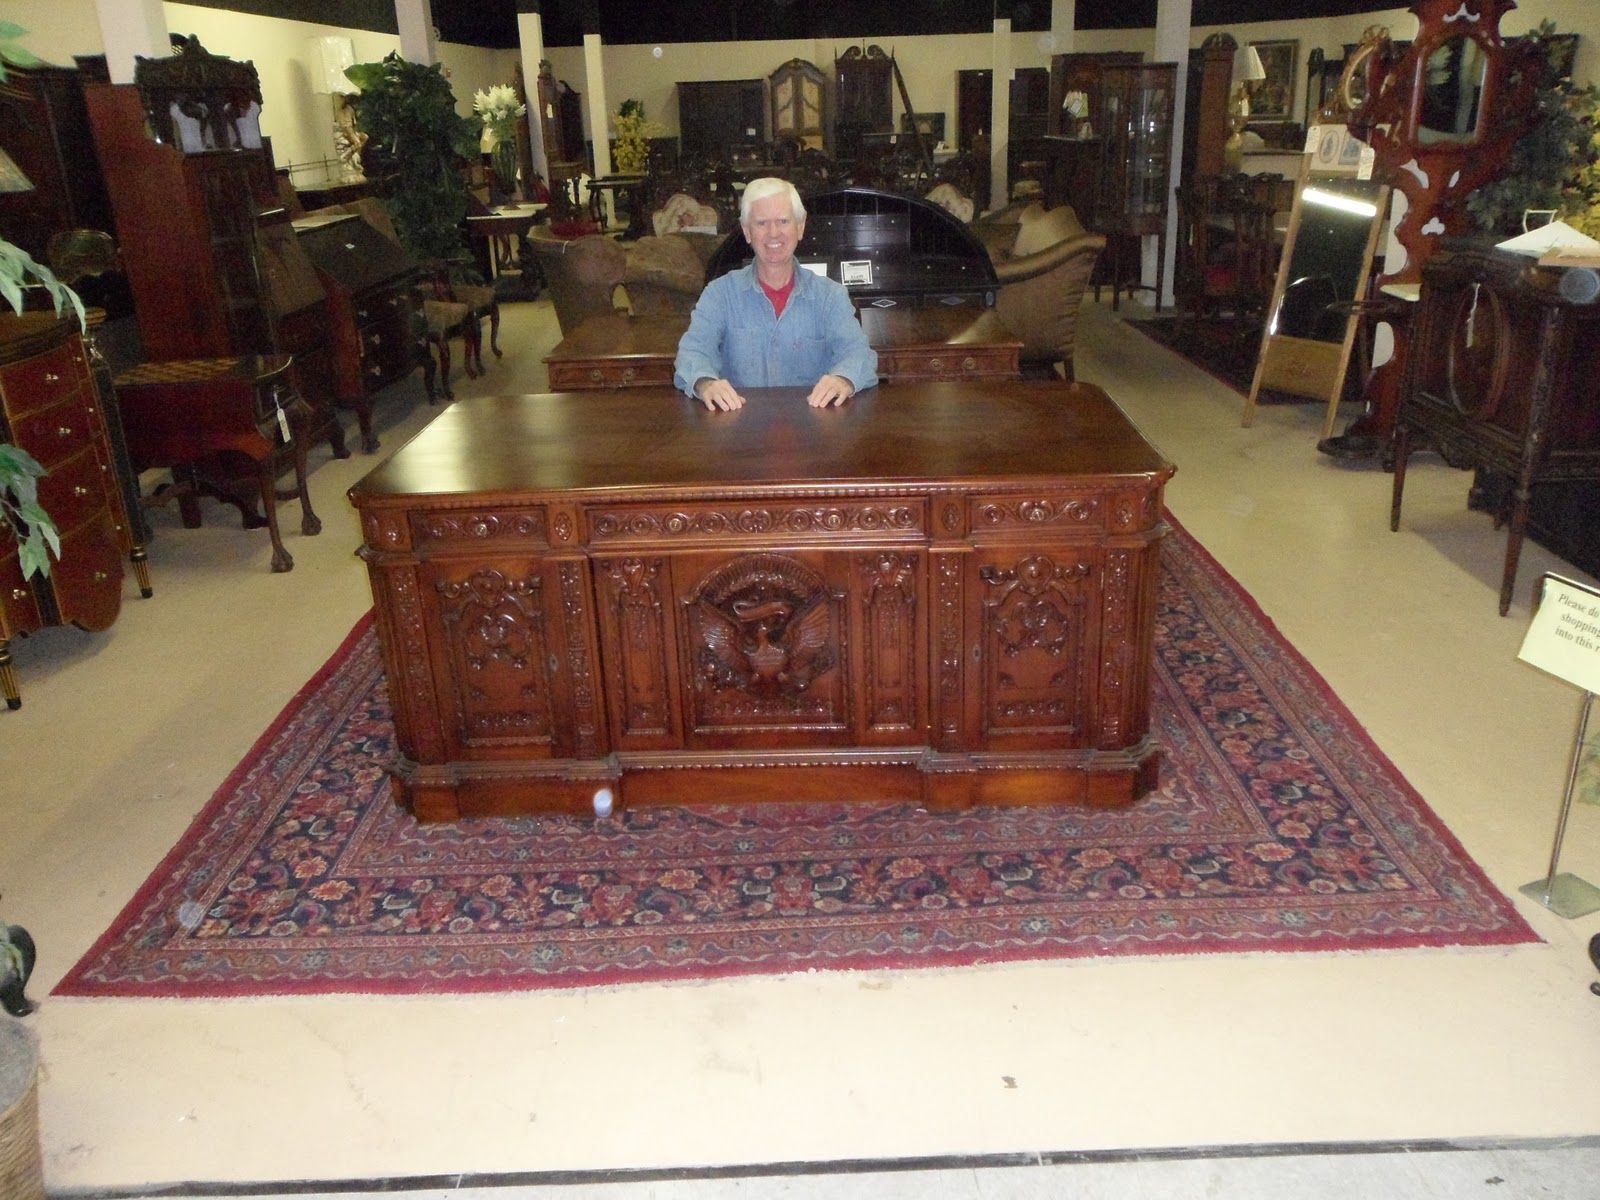 oval office resolute desk. Replica Of A Resolute Desk On Display In An Antique Store Shopping Mall Oval Office